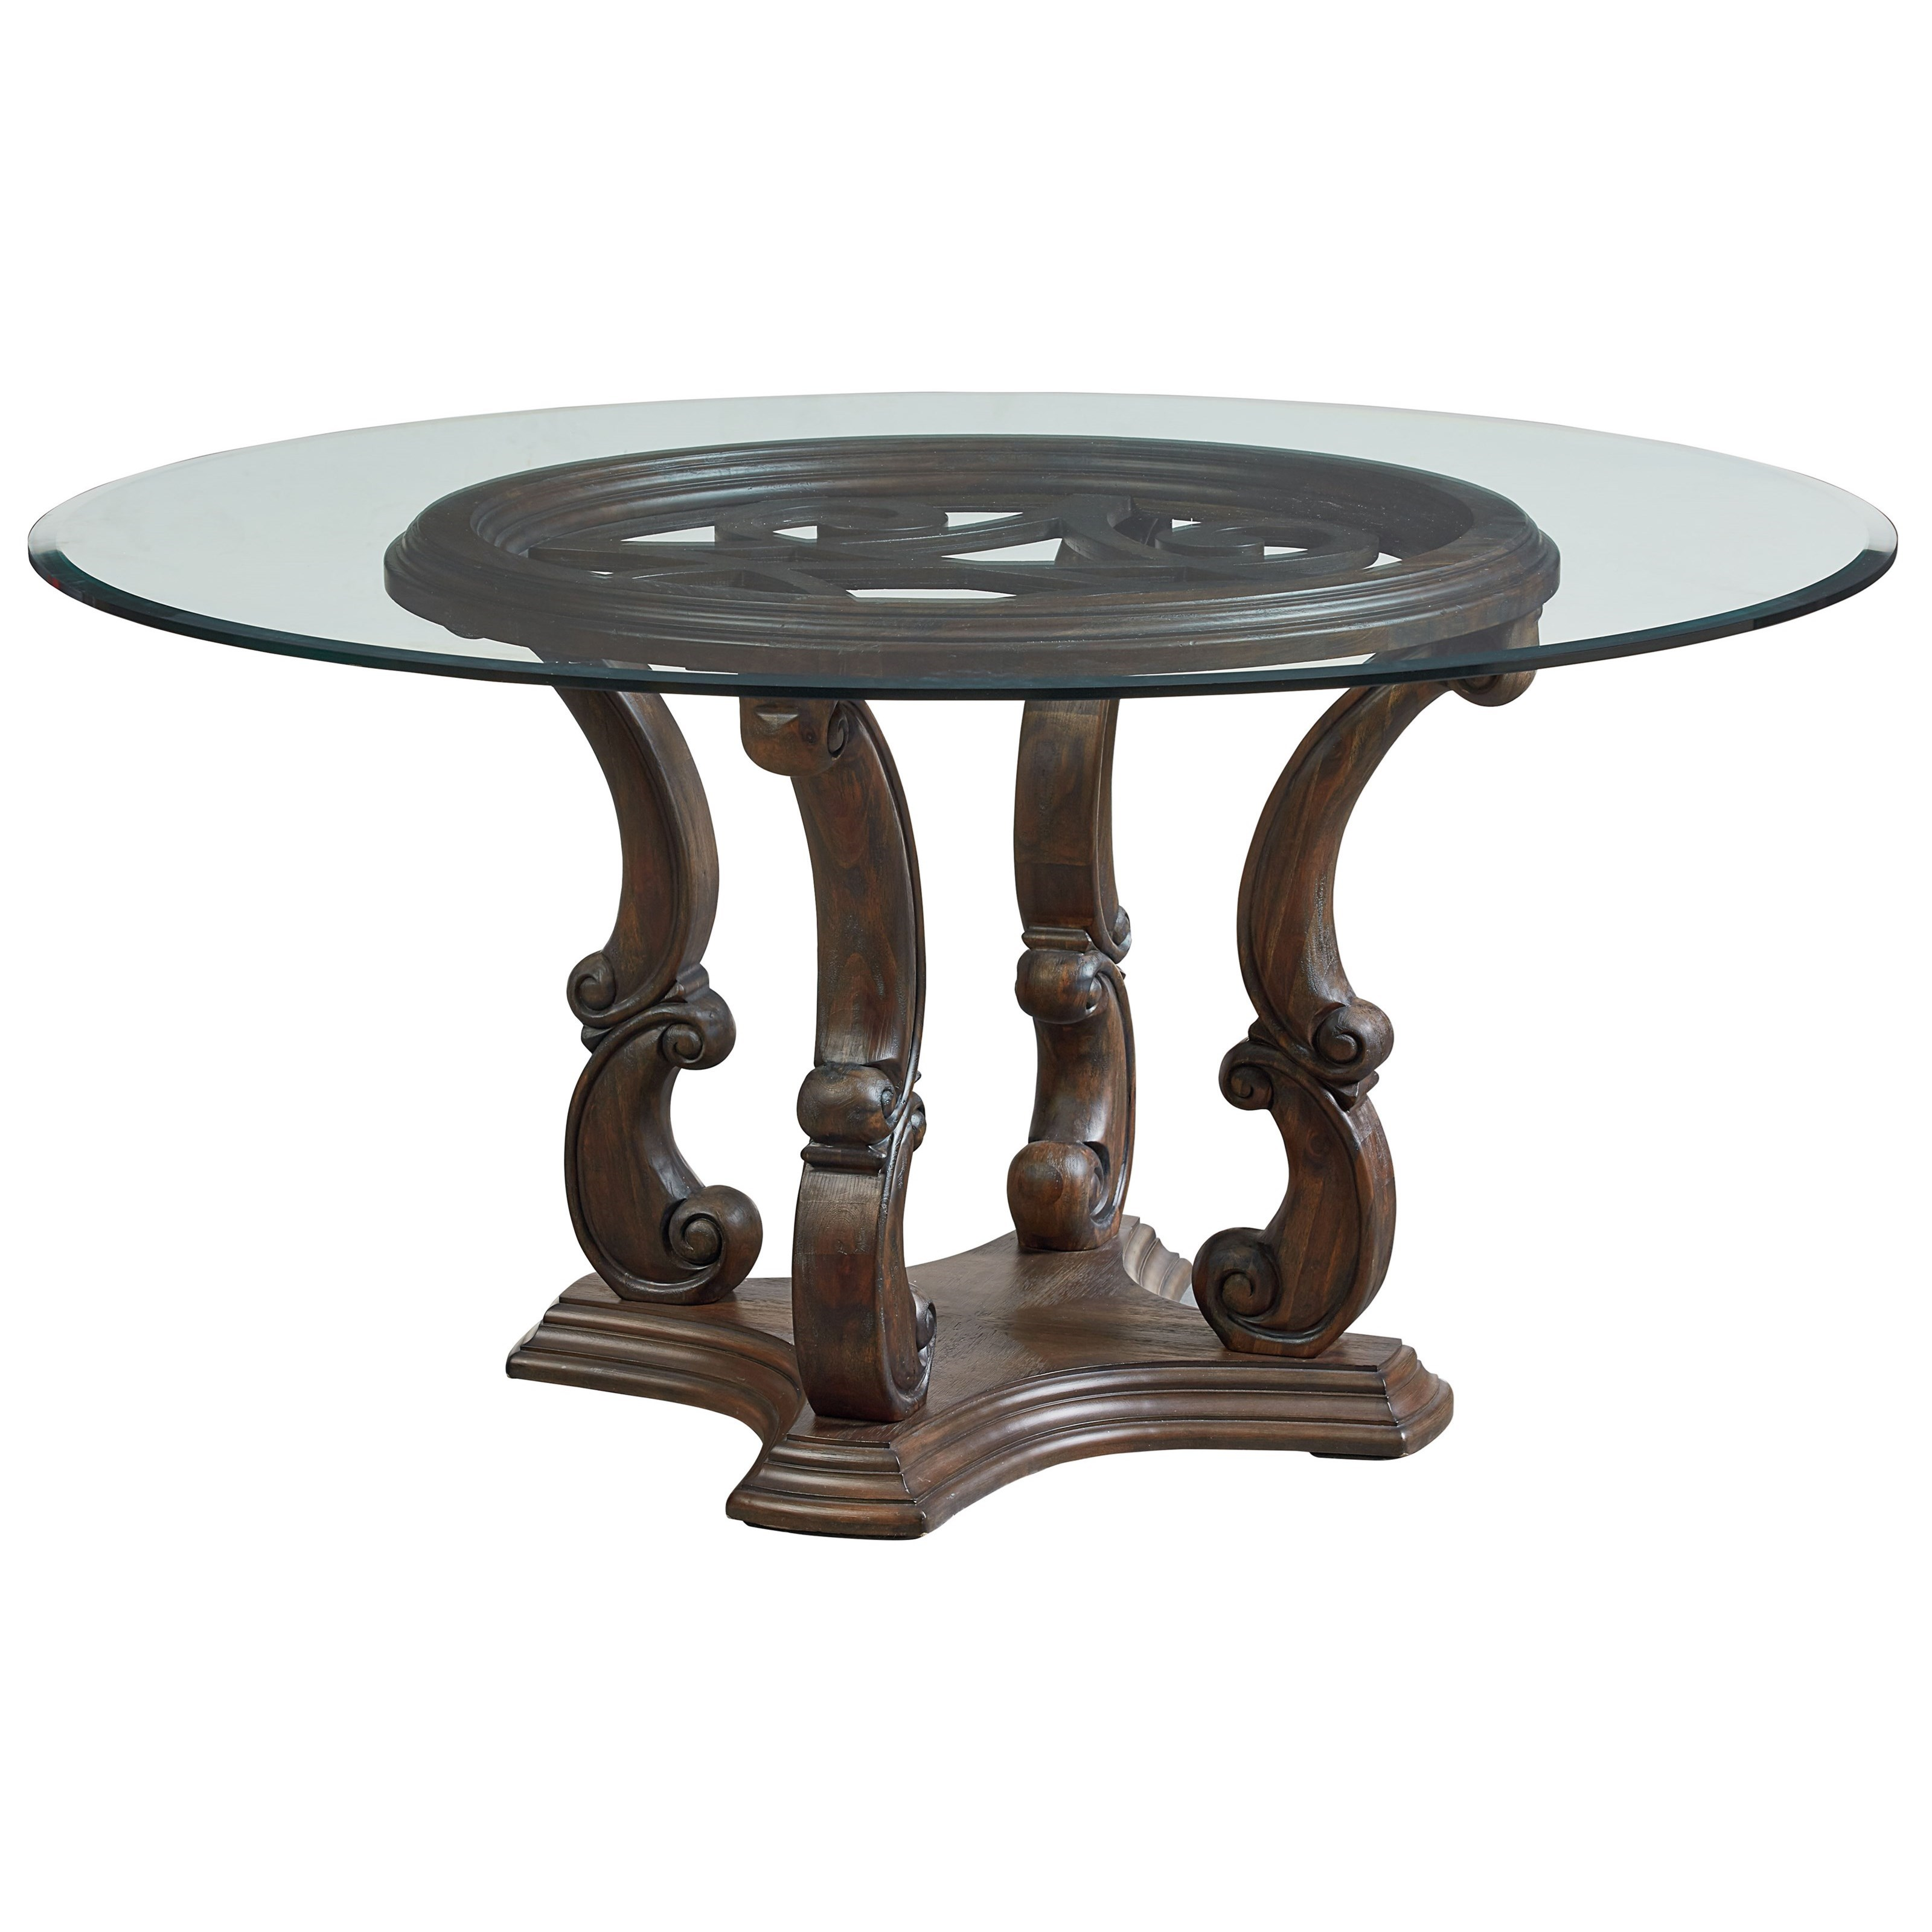 Standard furniture parliament 60 inch round dining room for Standard dining table